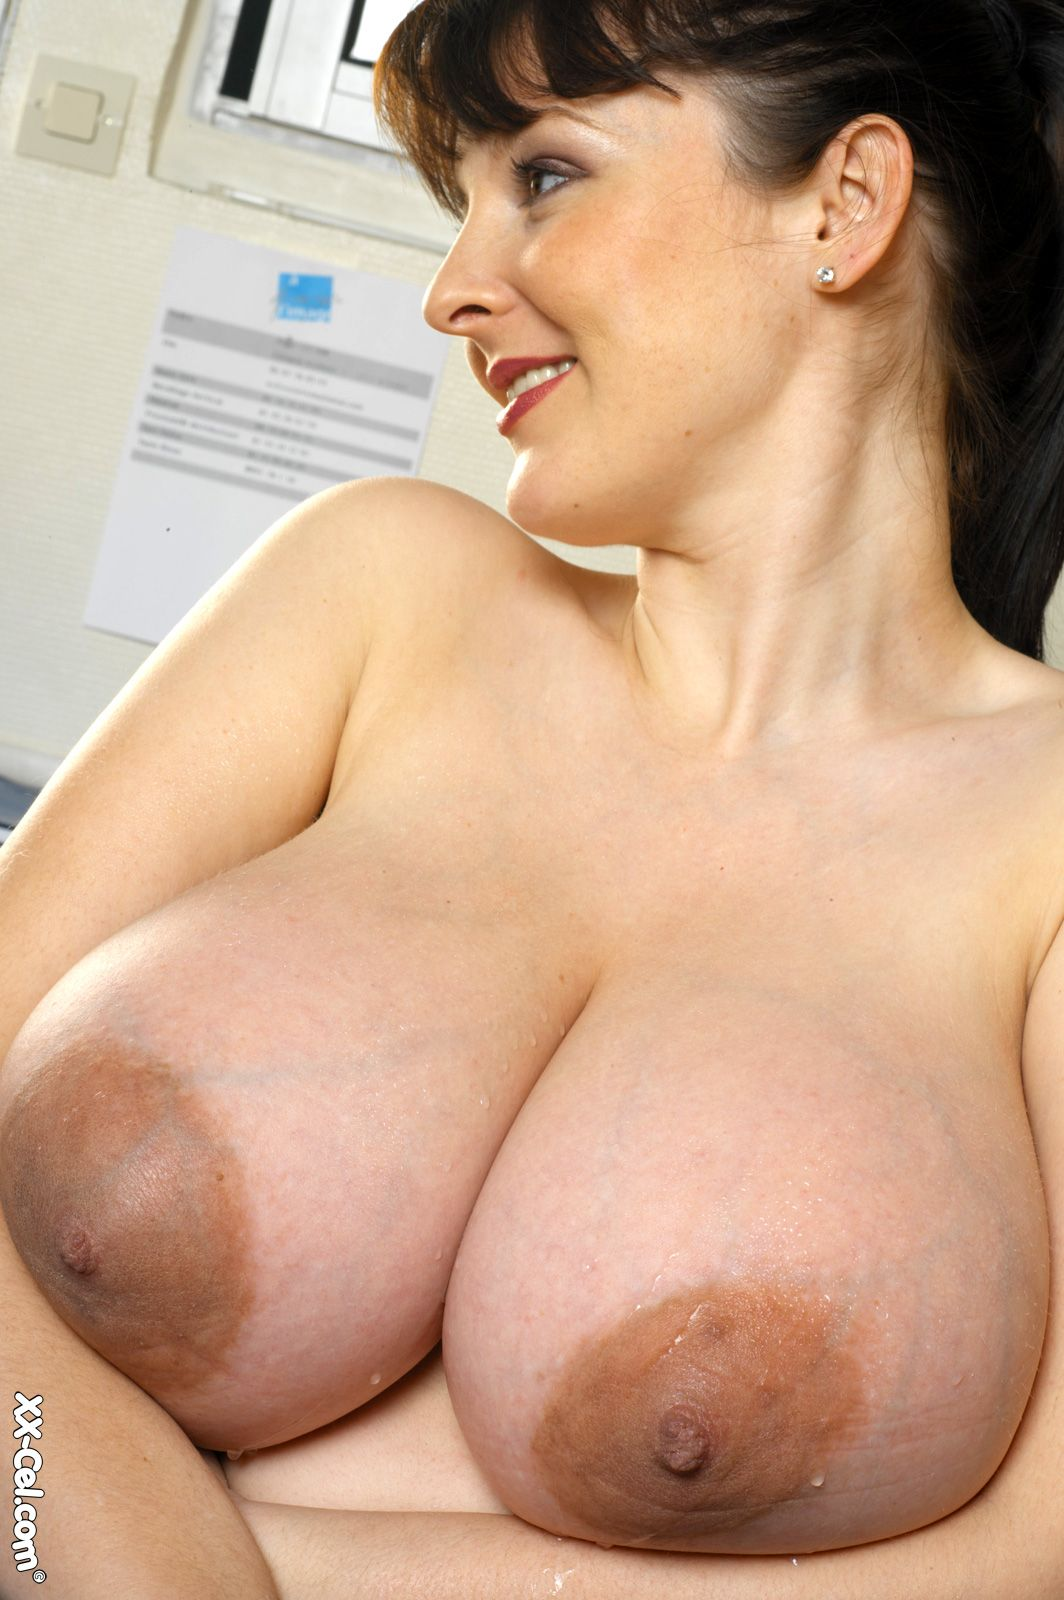 Tits nipples nice with big